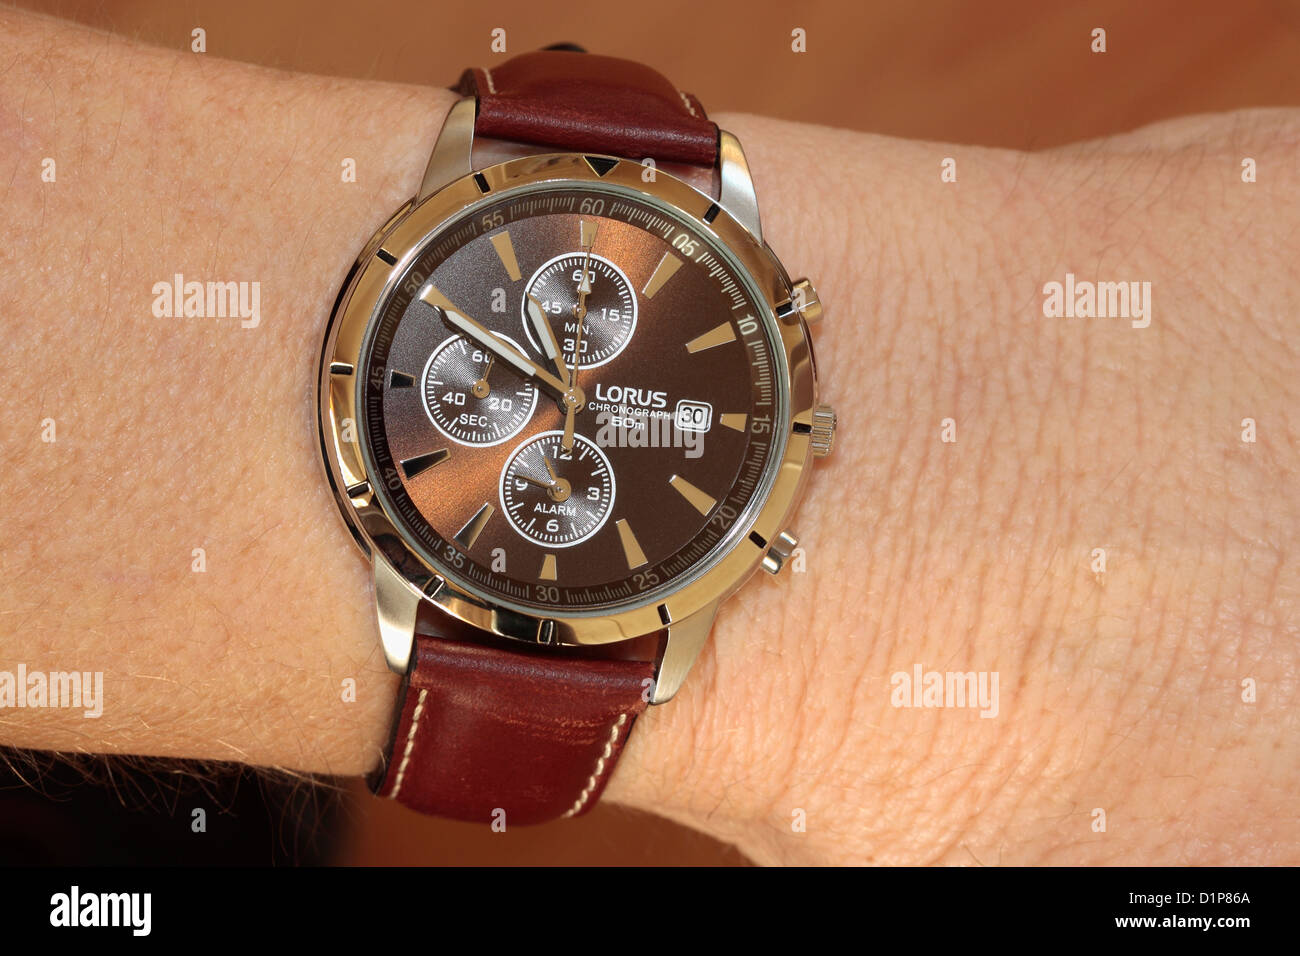 New Watch on Wrist Stock Photo